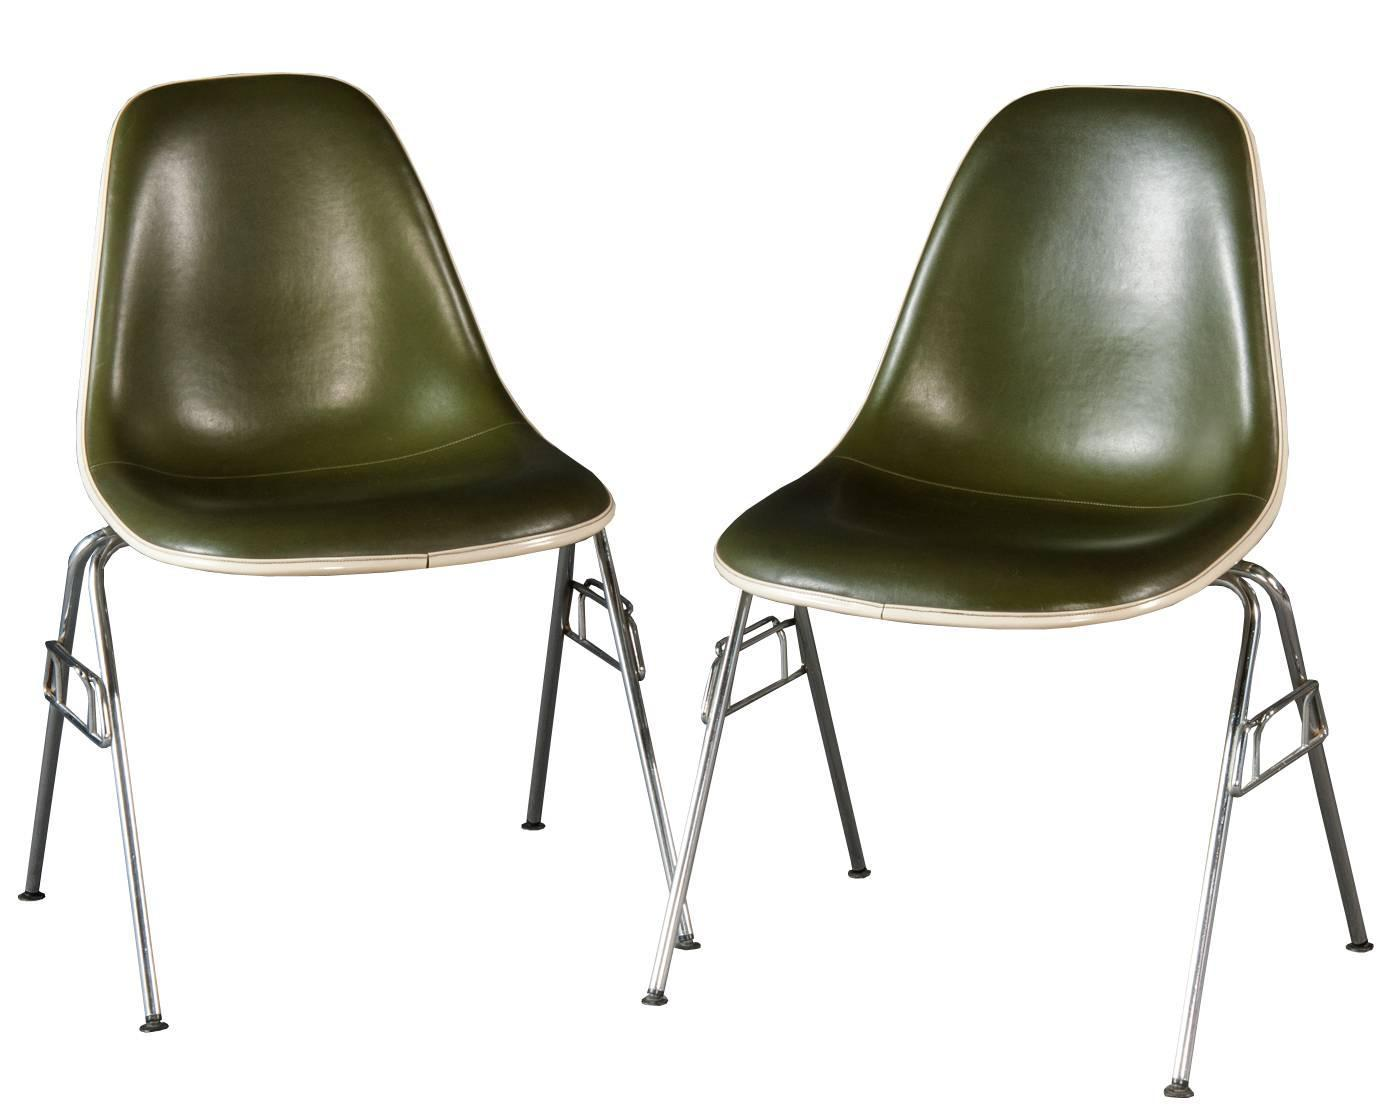 Model dss chair by charles and ray eames at 1stdibs - Charles eames and ray eames ...